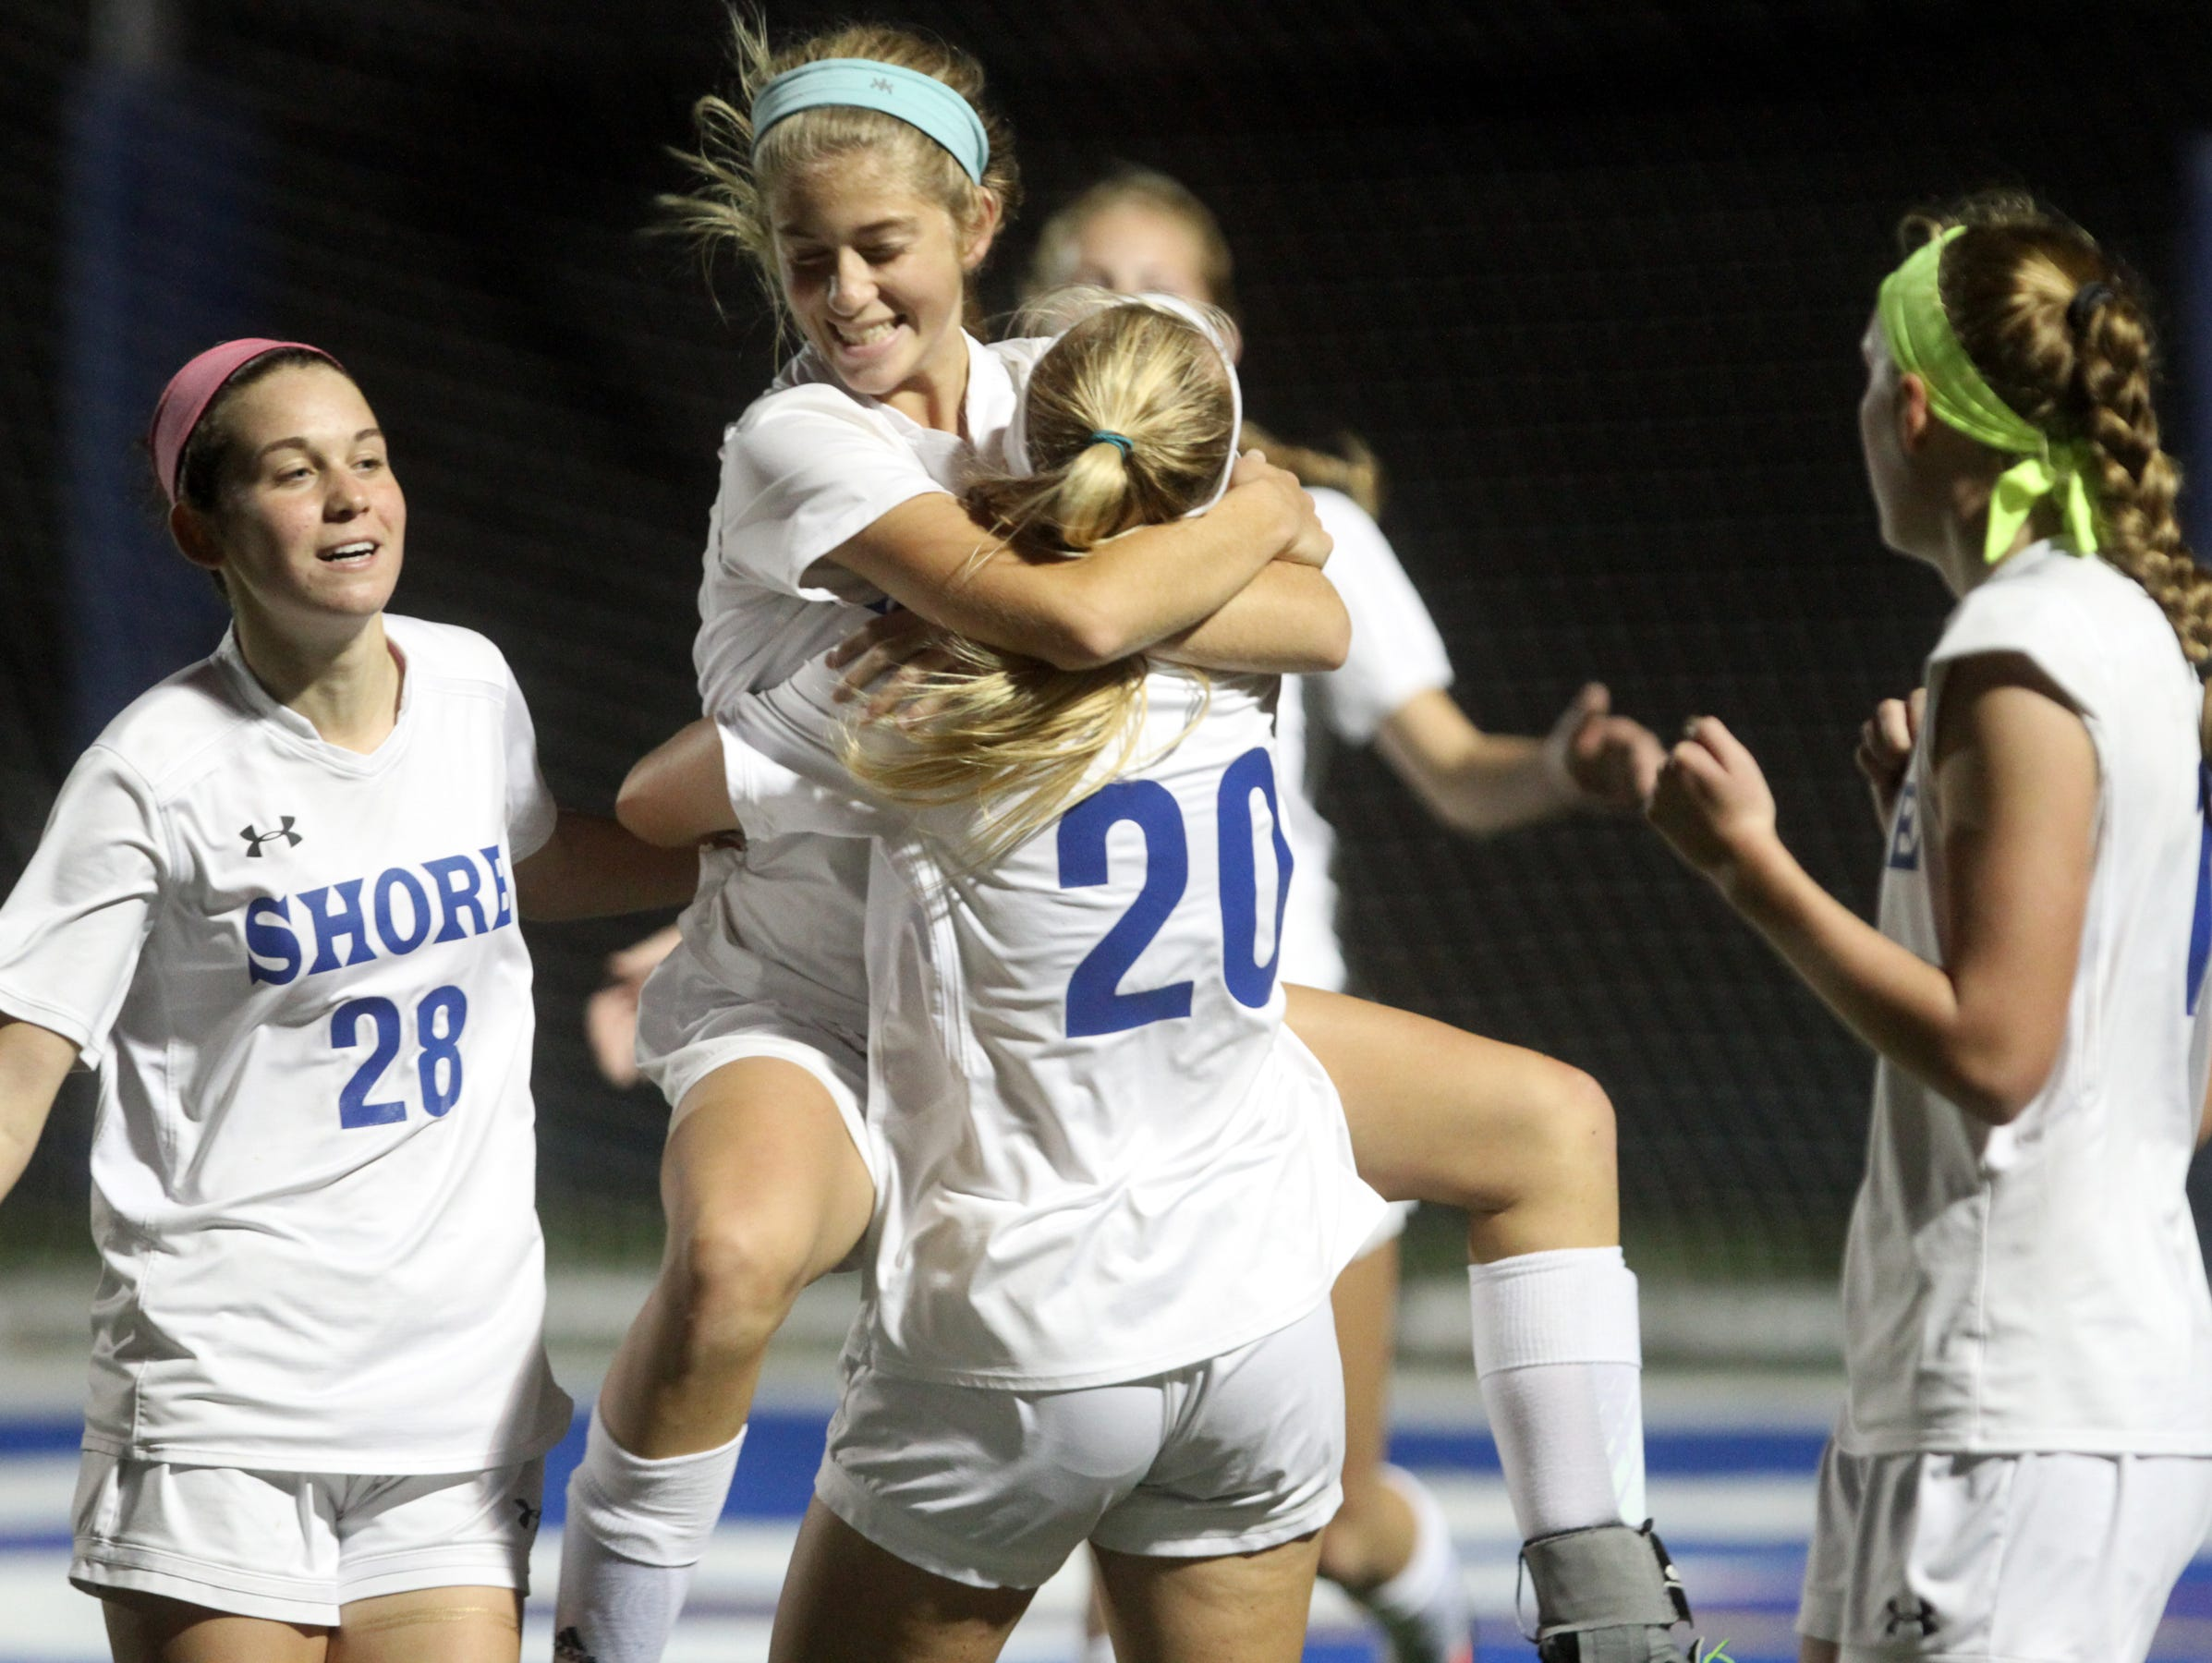 Shore Regional's Frankie McDonough leaps into the arms of teammate Sophie Hauritz after scoring a second half goal against Metuchen in the Central Group I girls soccer sectional final, Thursday, November 12, 2015, in West Long Branch.